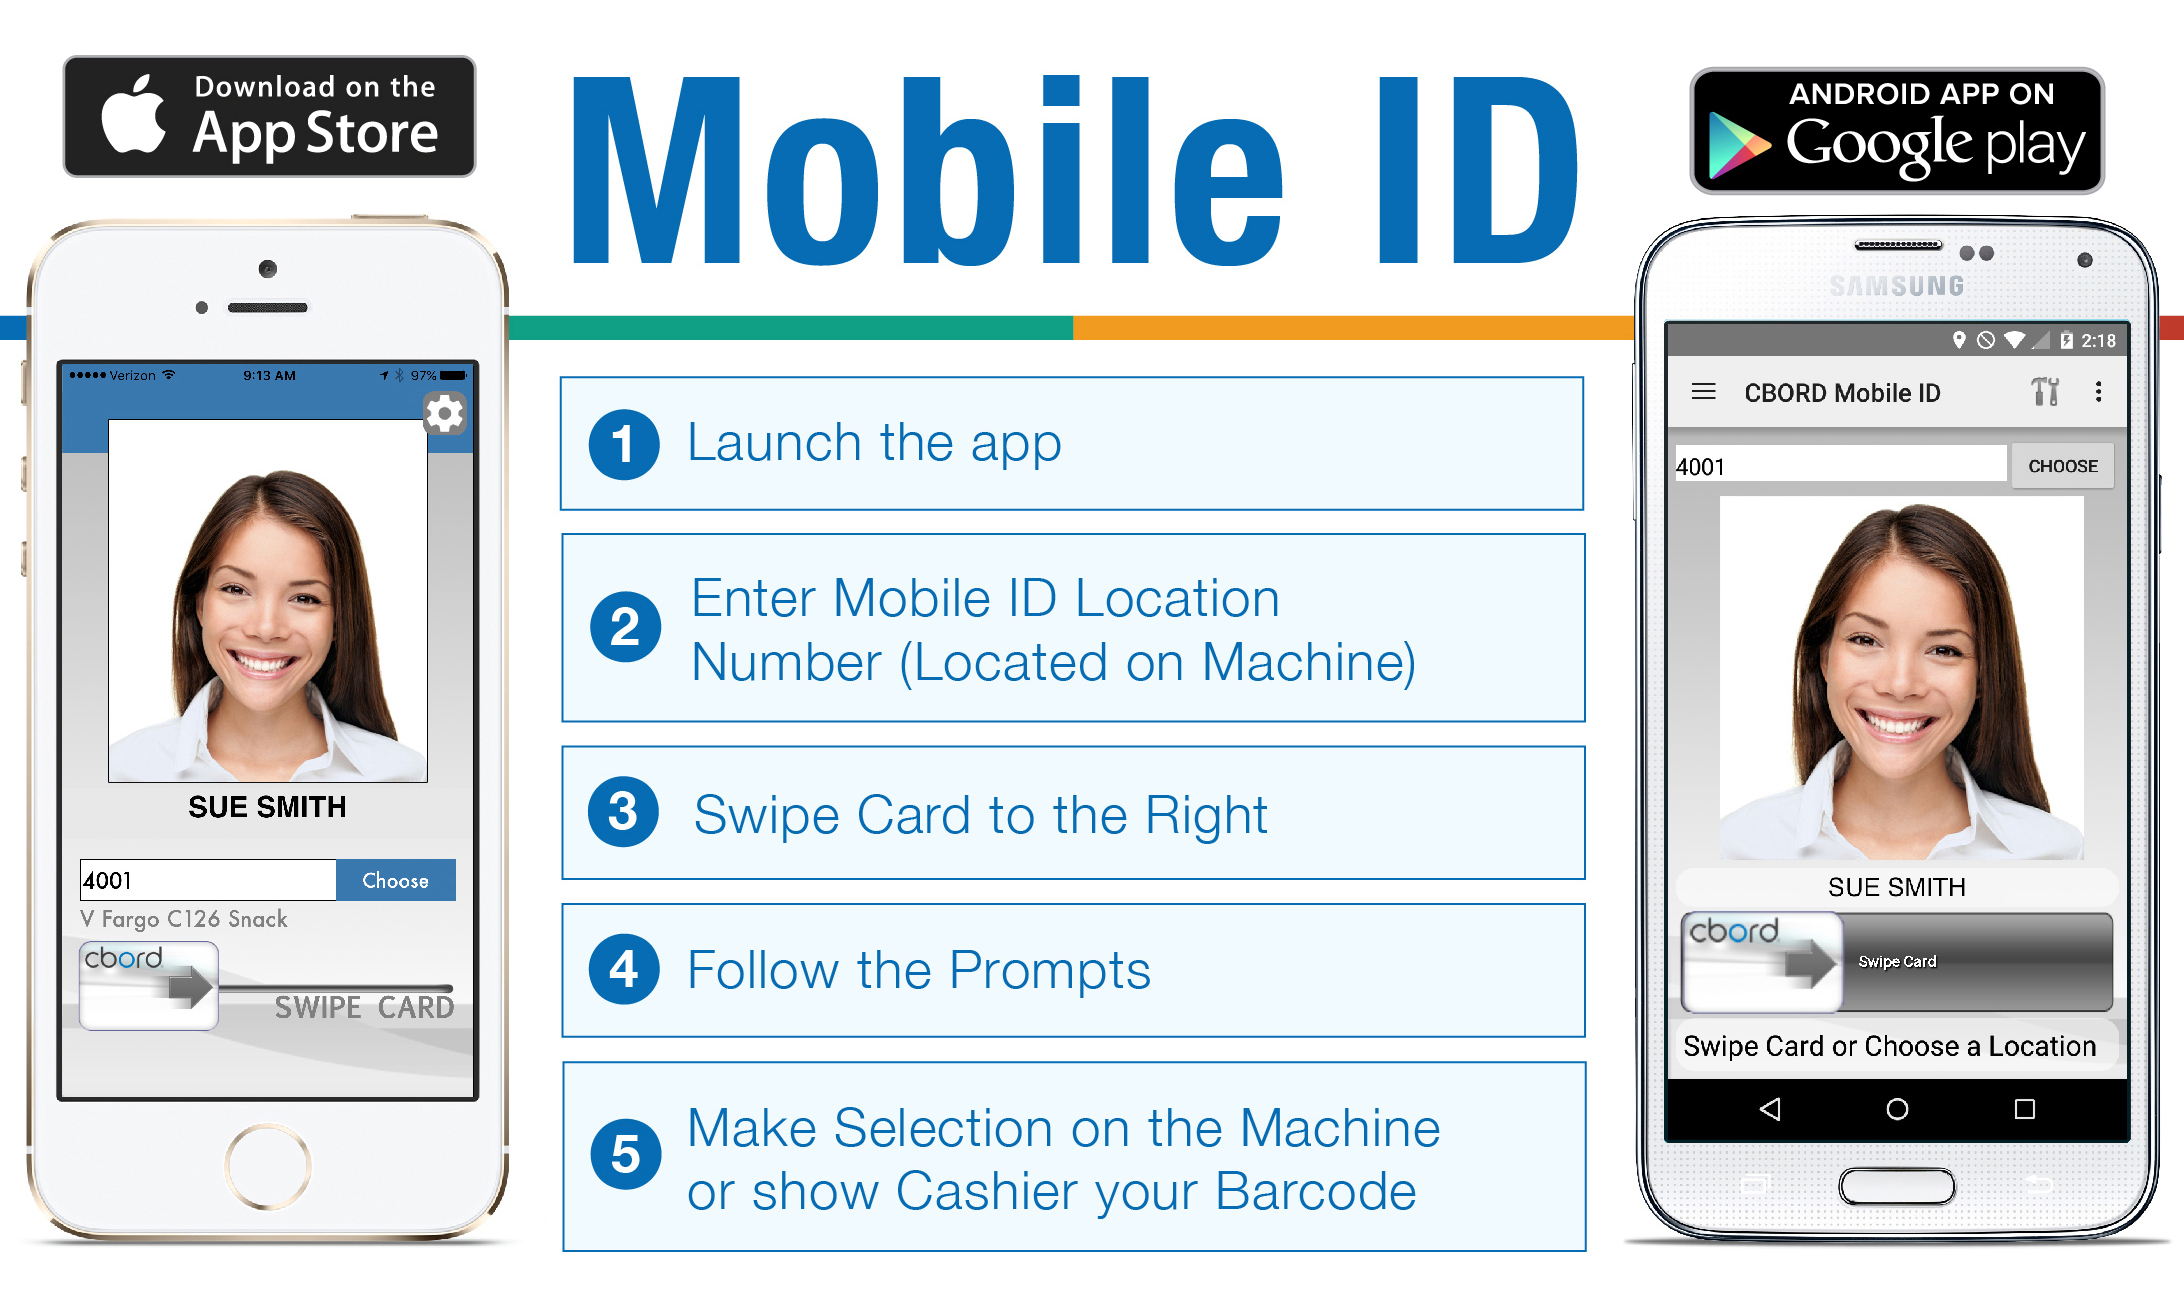 Mobile ID. Download on the App Store or Google Play. 1. Launch the app. 2. Enter Mobile ID location number (located on machine). 3. Swipe card to the right. 4. Follow the prompts. 5. Make selection on the machine or show cashier your Barcode.